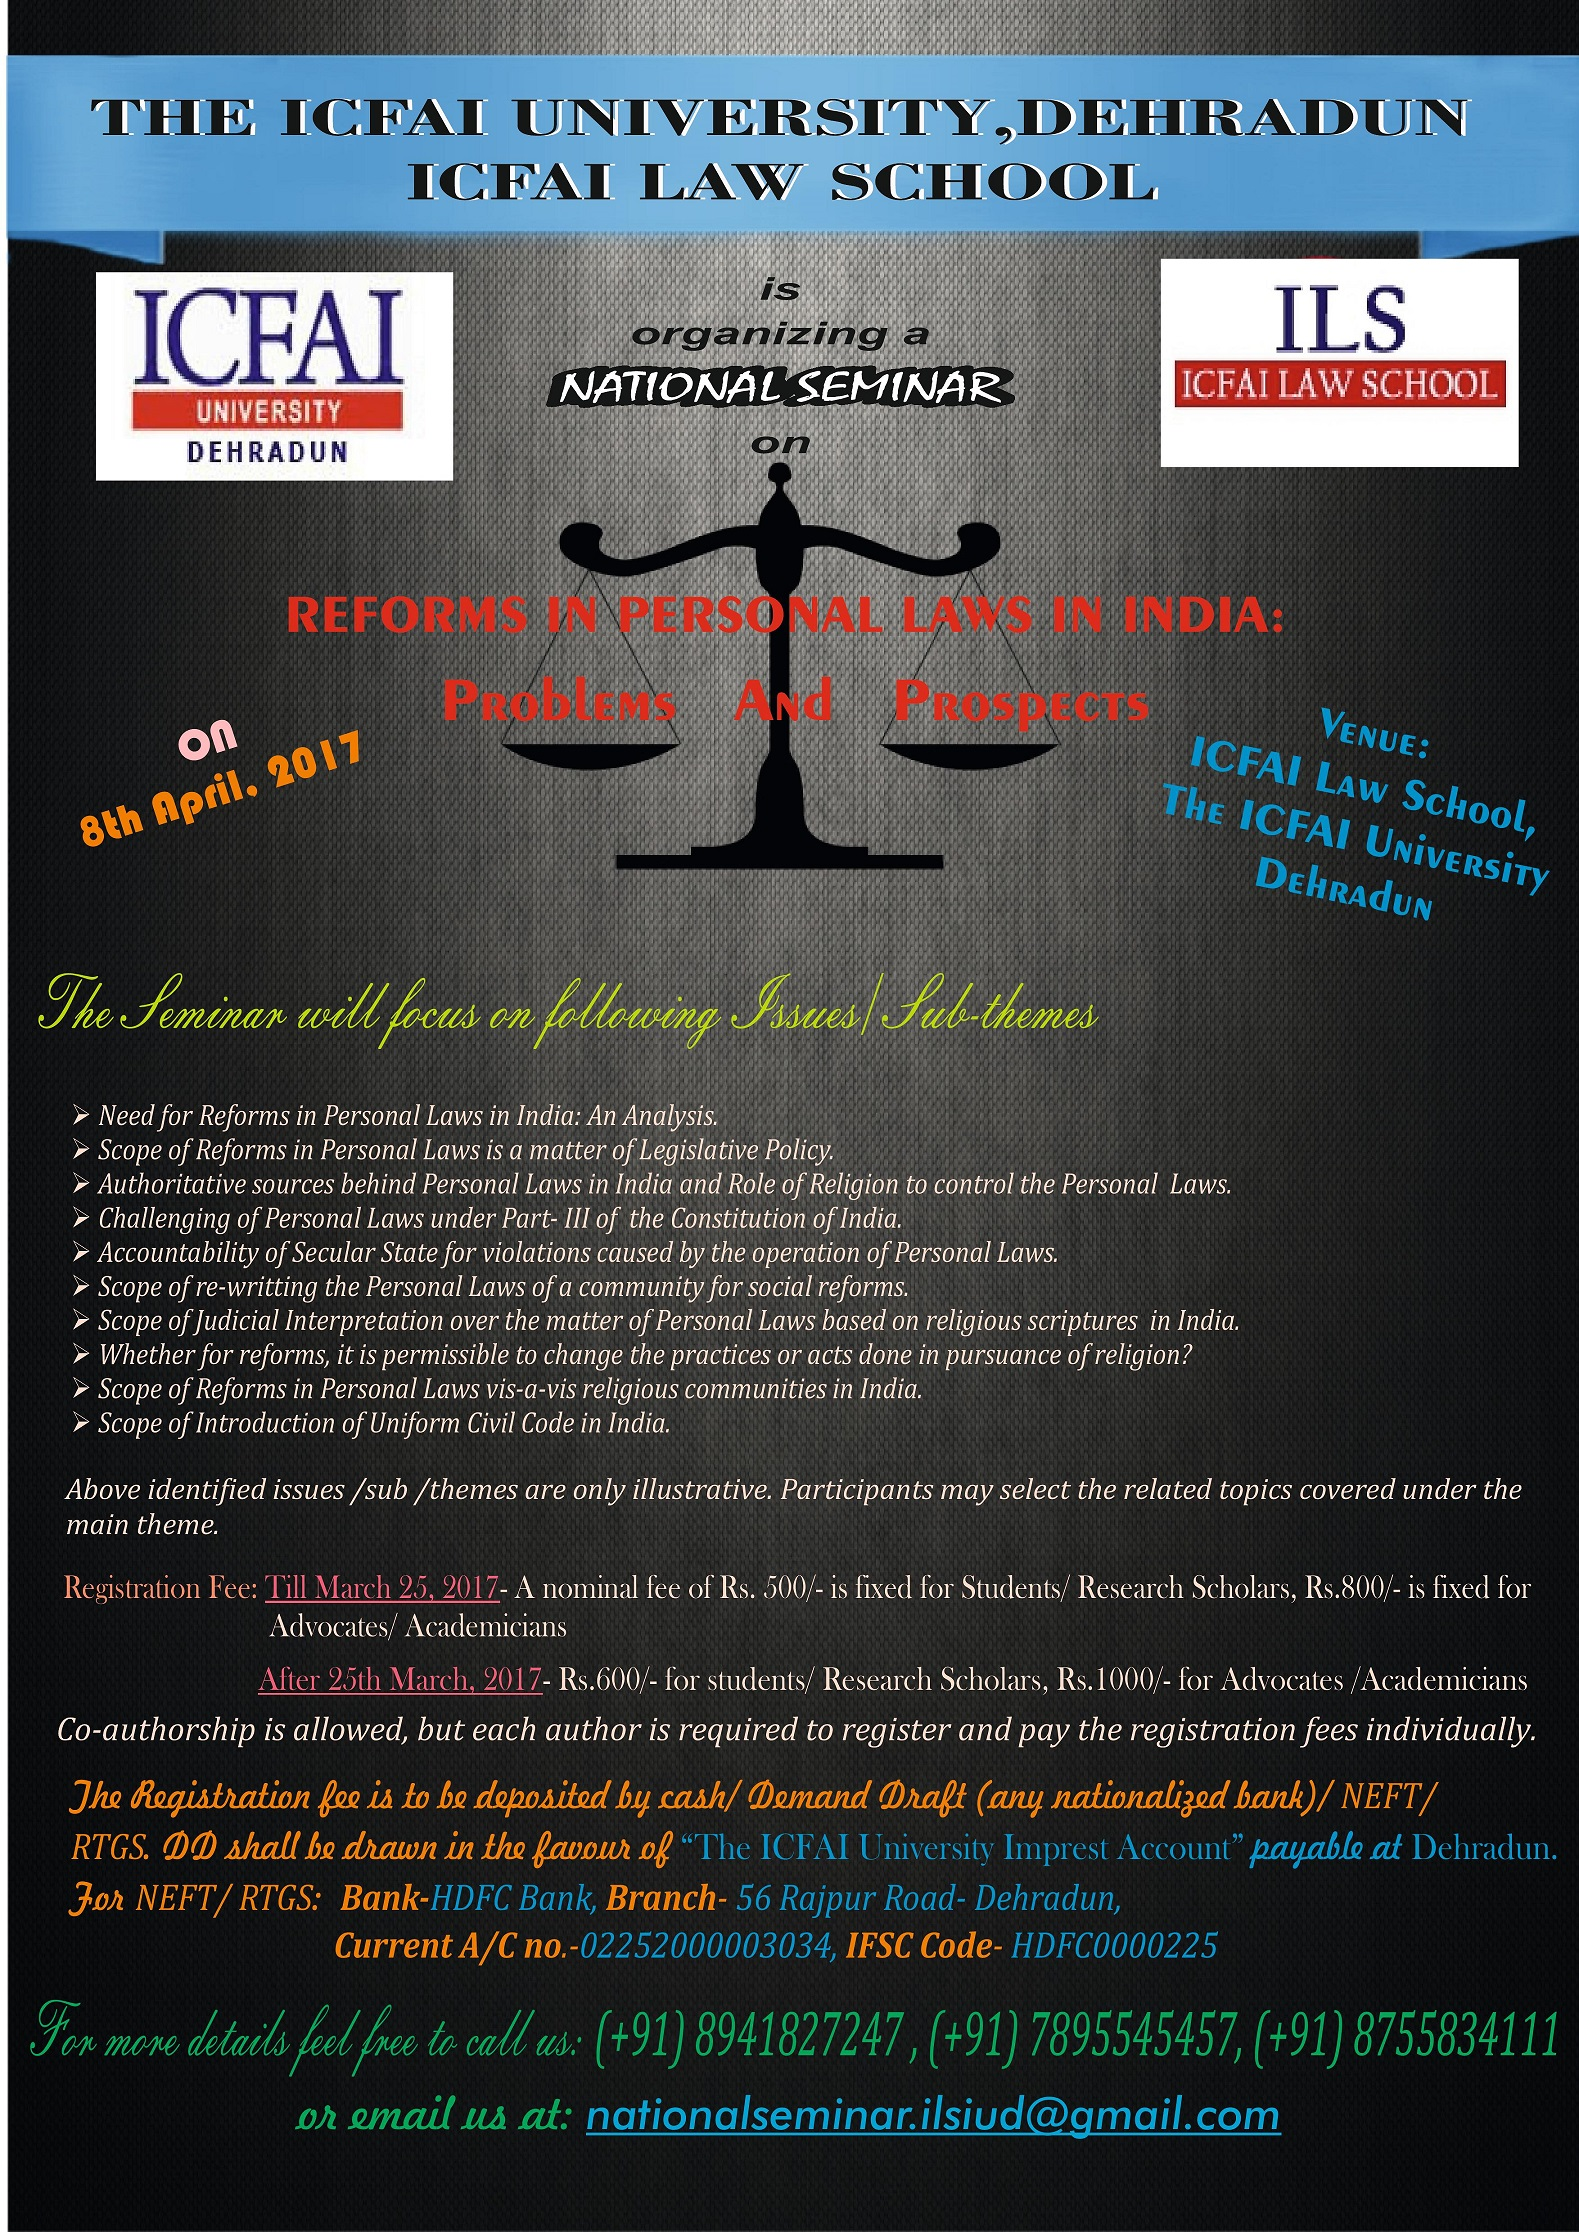 icfai research papers Call for papers: research papers/articles and case studies from legal fraternity are invited for presentation in the national call for papers | icfai law school.